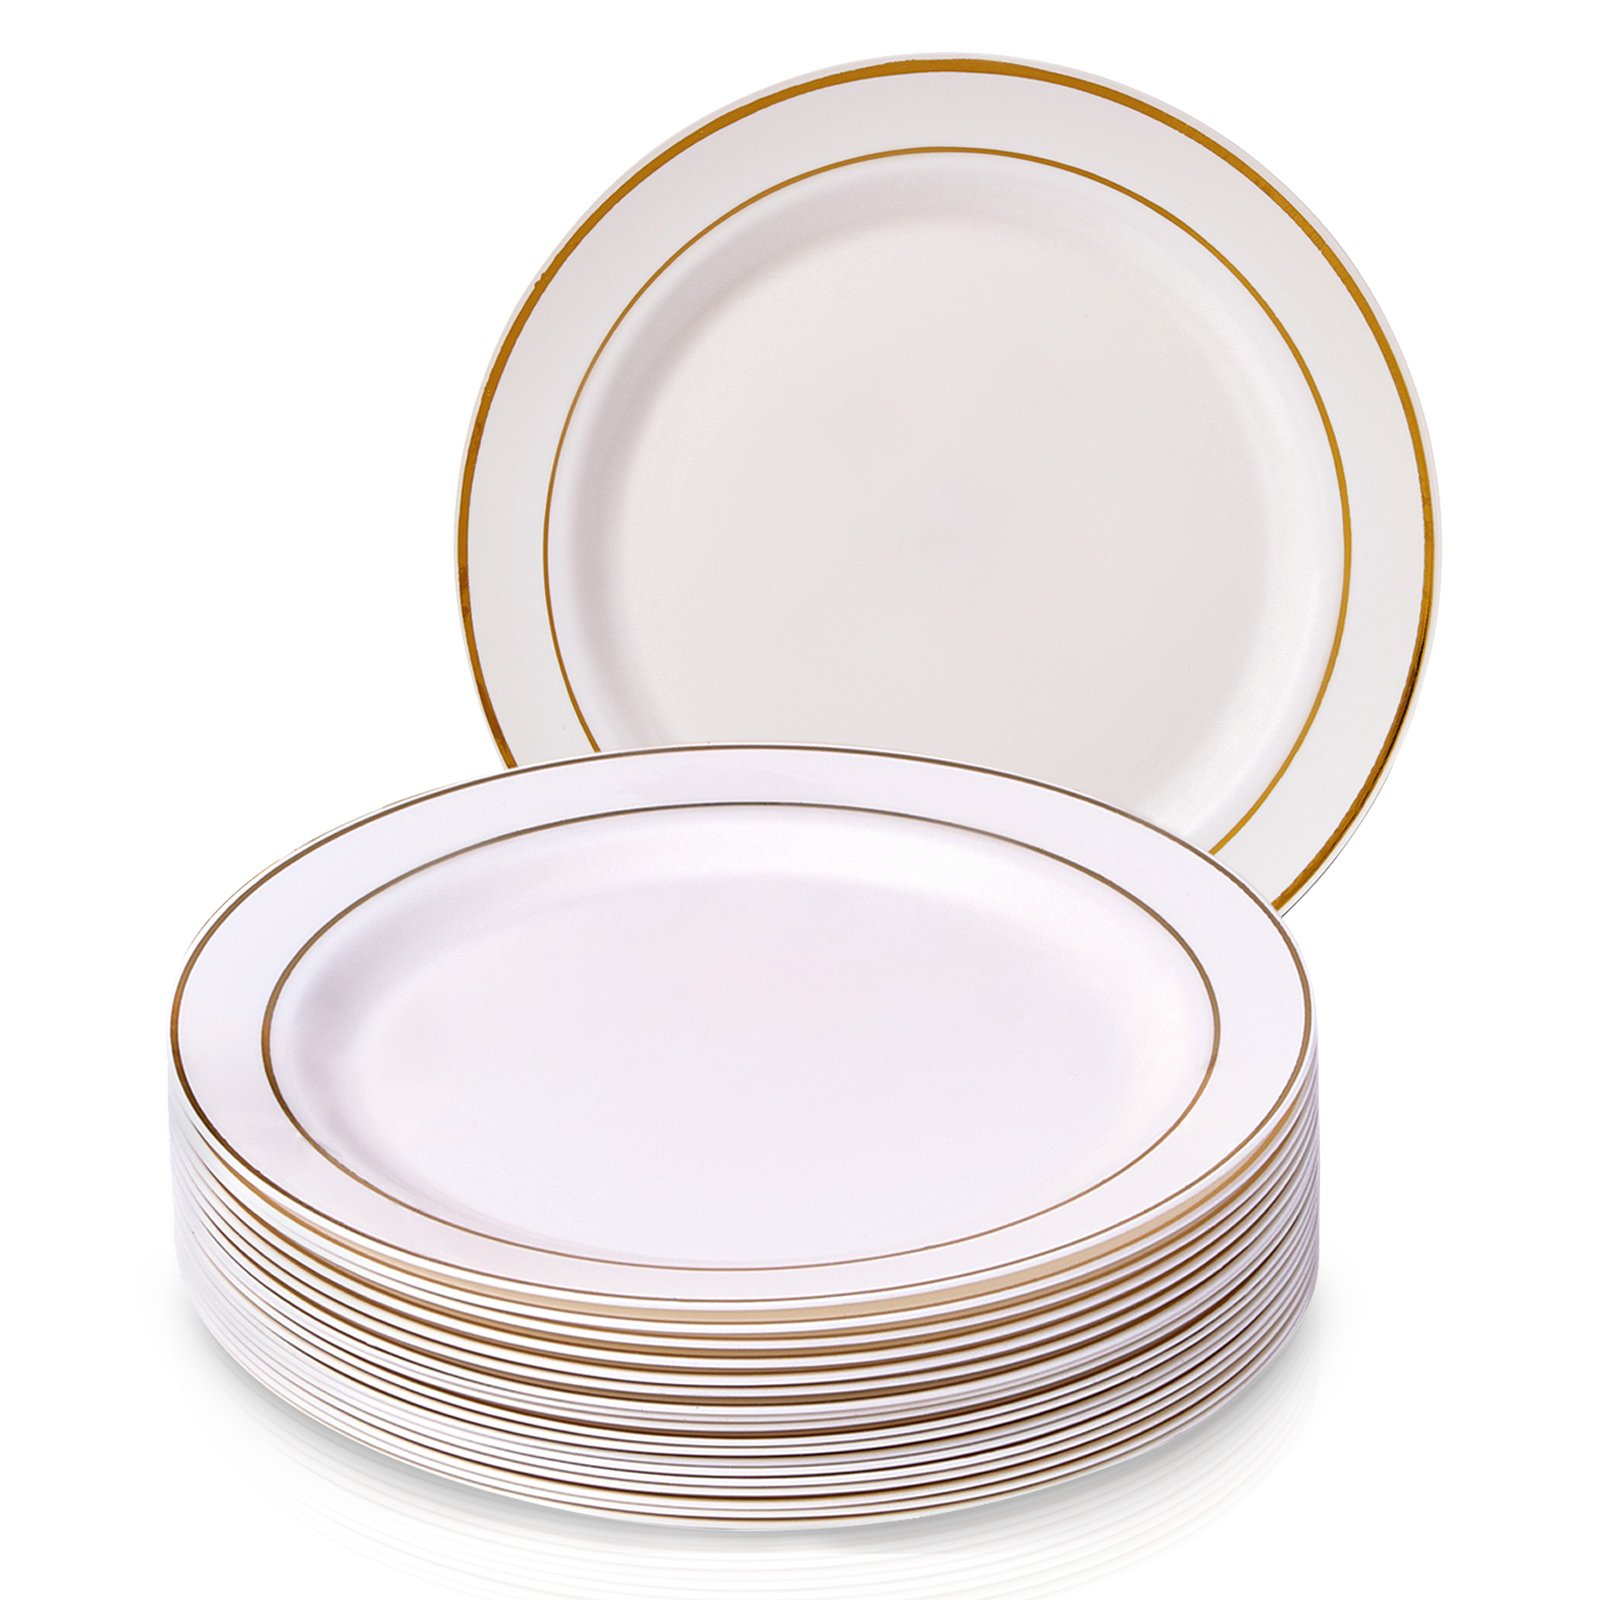 PARTY DISPOSABLE 20 PC DINNERWARE SET | 20 Dinner Plates | Heavyweight Plastic Dishes | Elegant Fine China Look | Upscale Wedding and Dining (Golden Glare Collection– Ivory/Gold Border | 10.25 Inch)